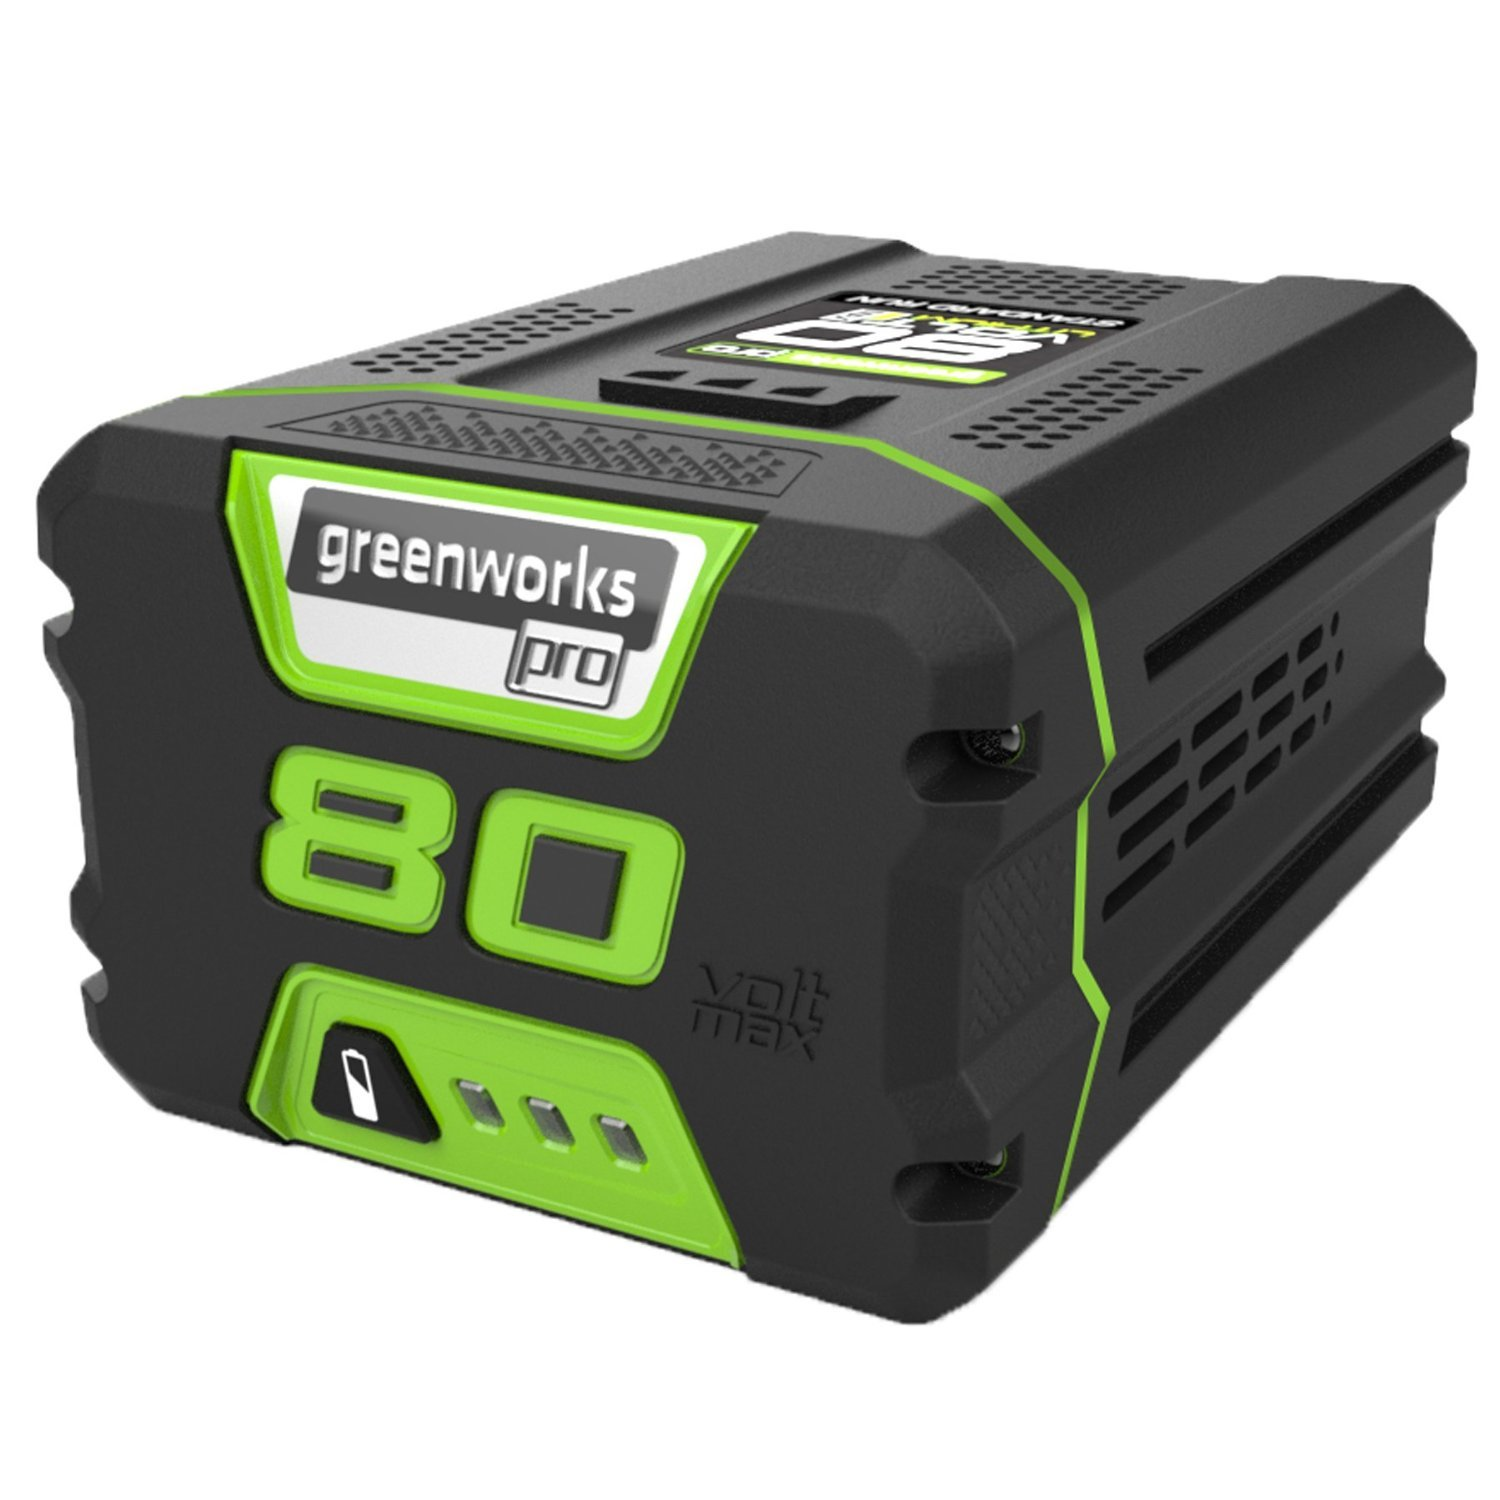 GreenWorks GBA80200 80V 2.0AH Lithium Ion Battery by Greenworks